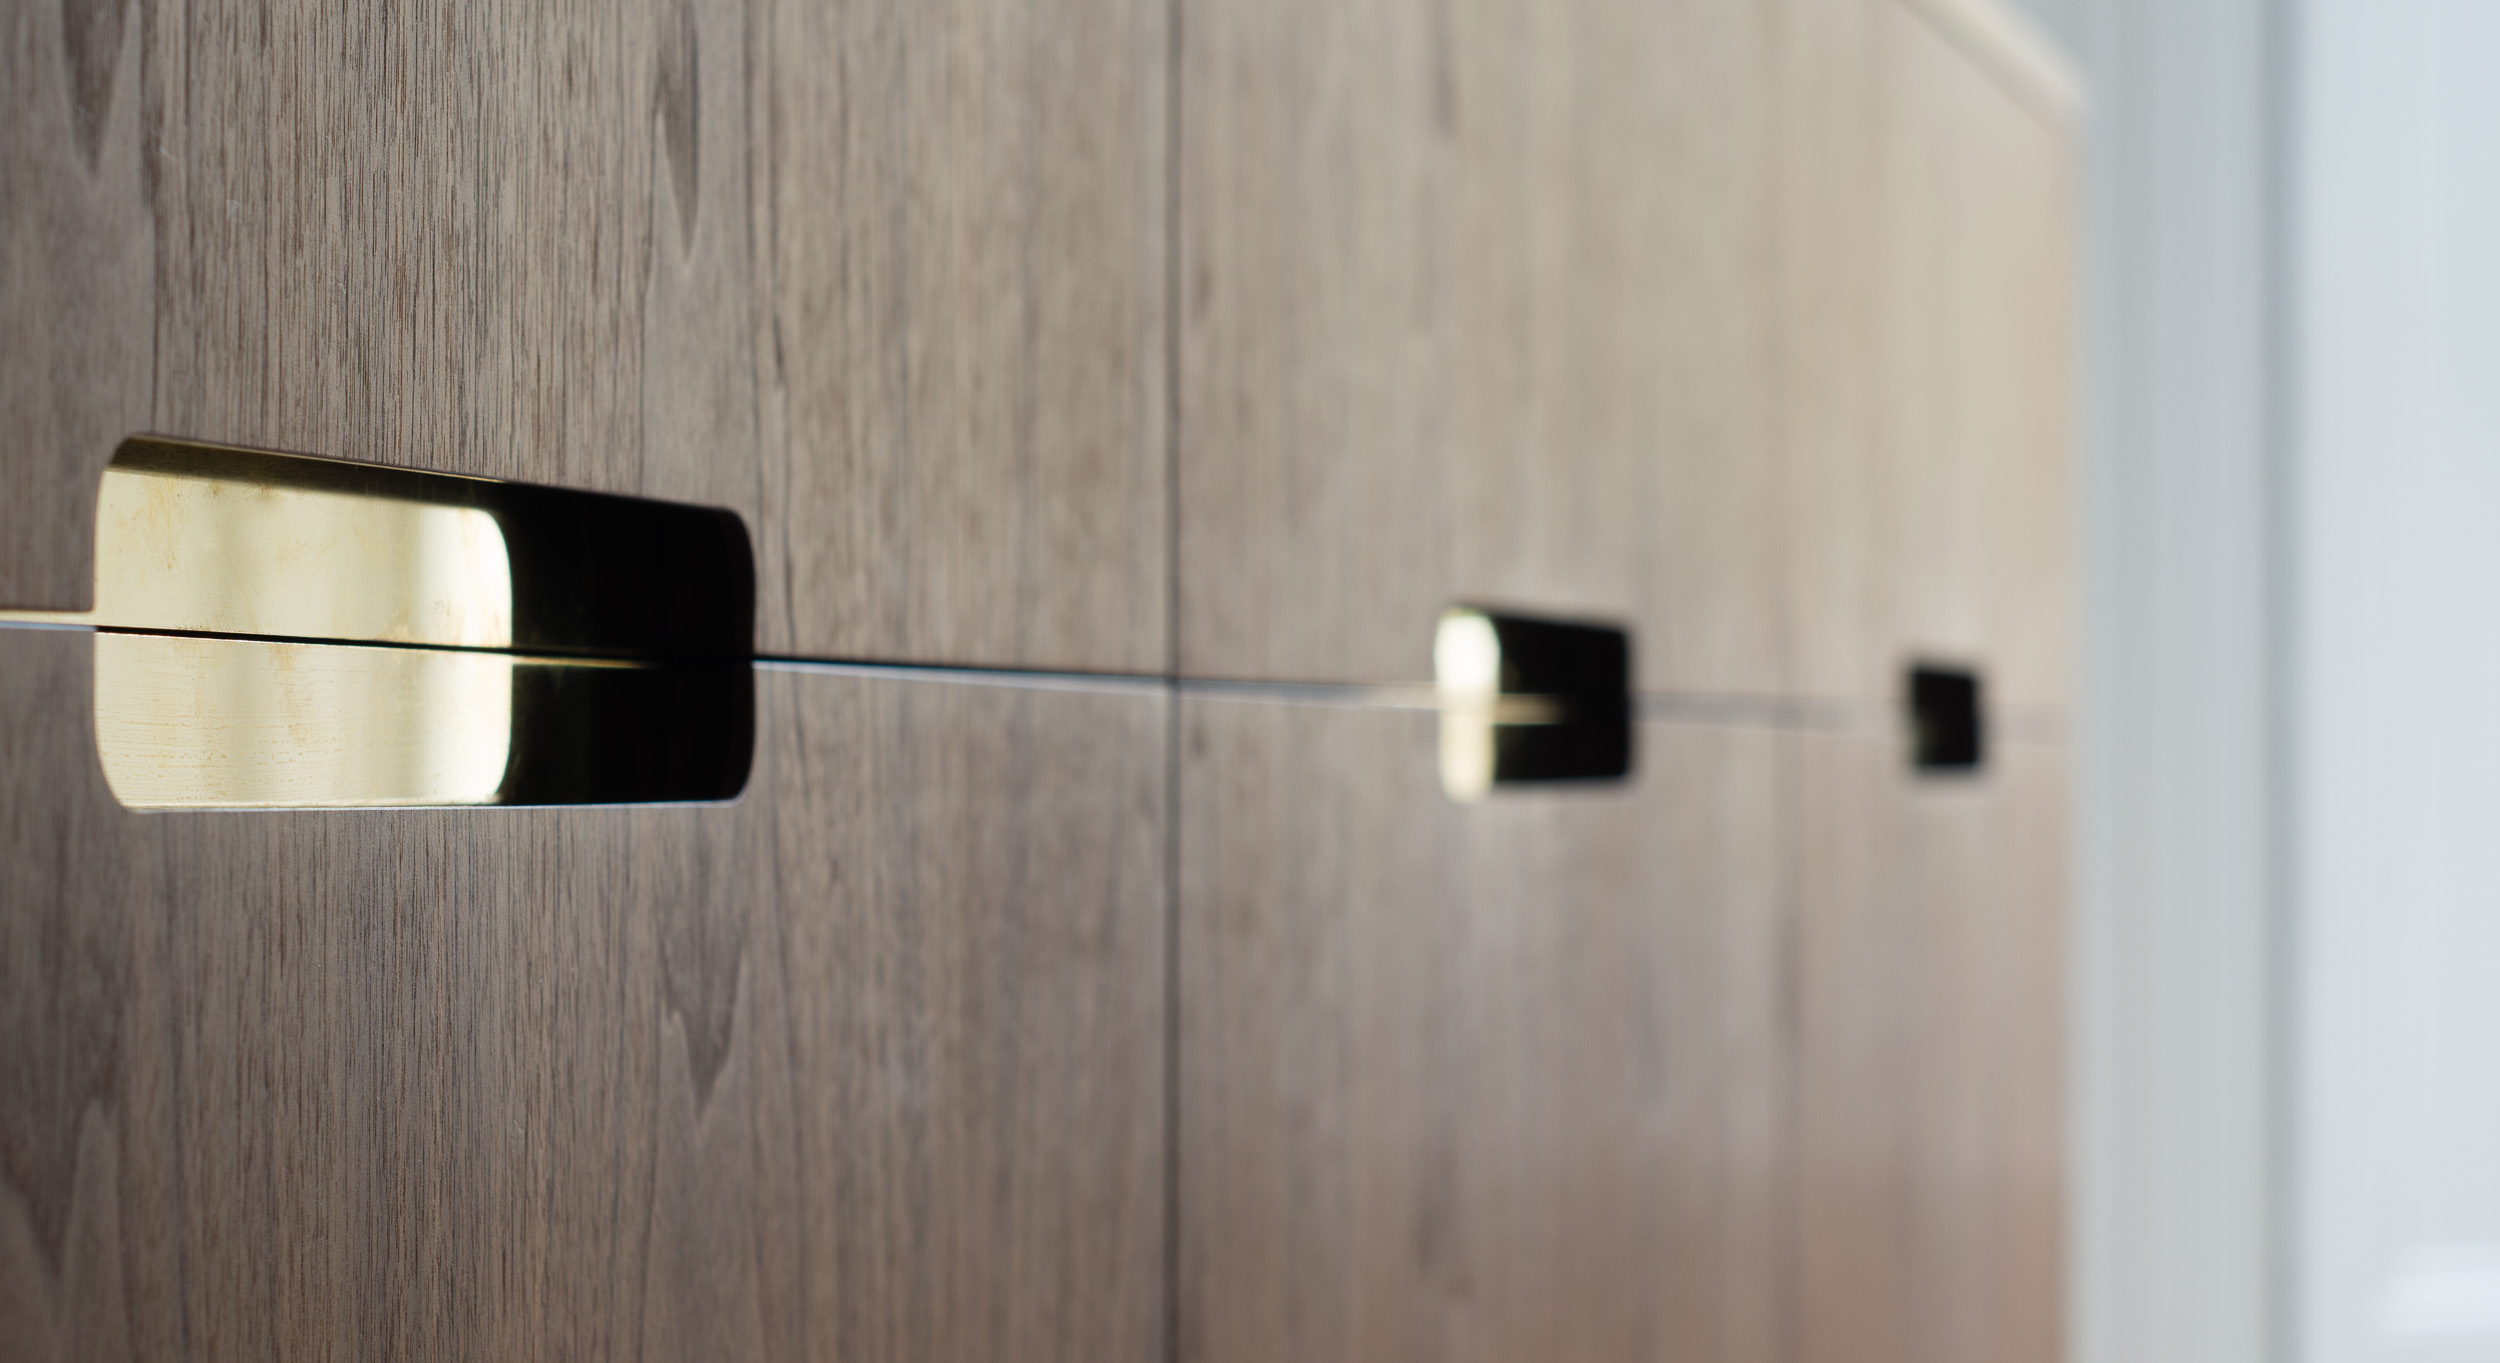 Bespoke freestanding furniture - routed finger pull detail showing polished brass reveal